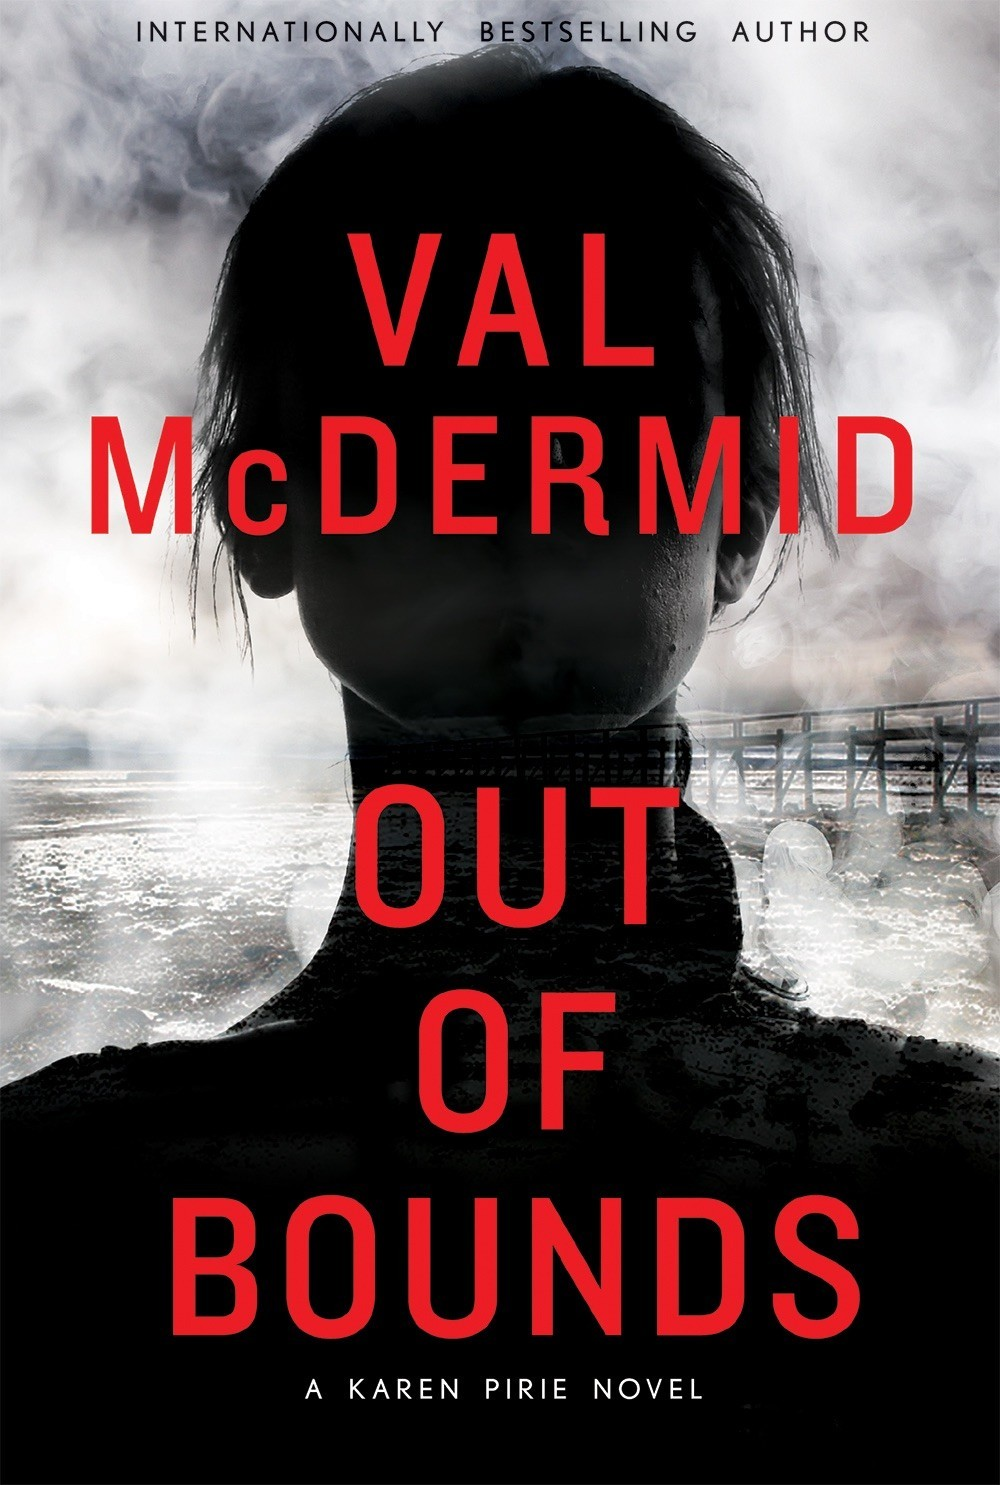 Crime fiction roundup with books by Val McDermid, James Church and Helene Tursten